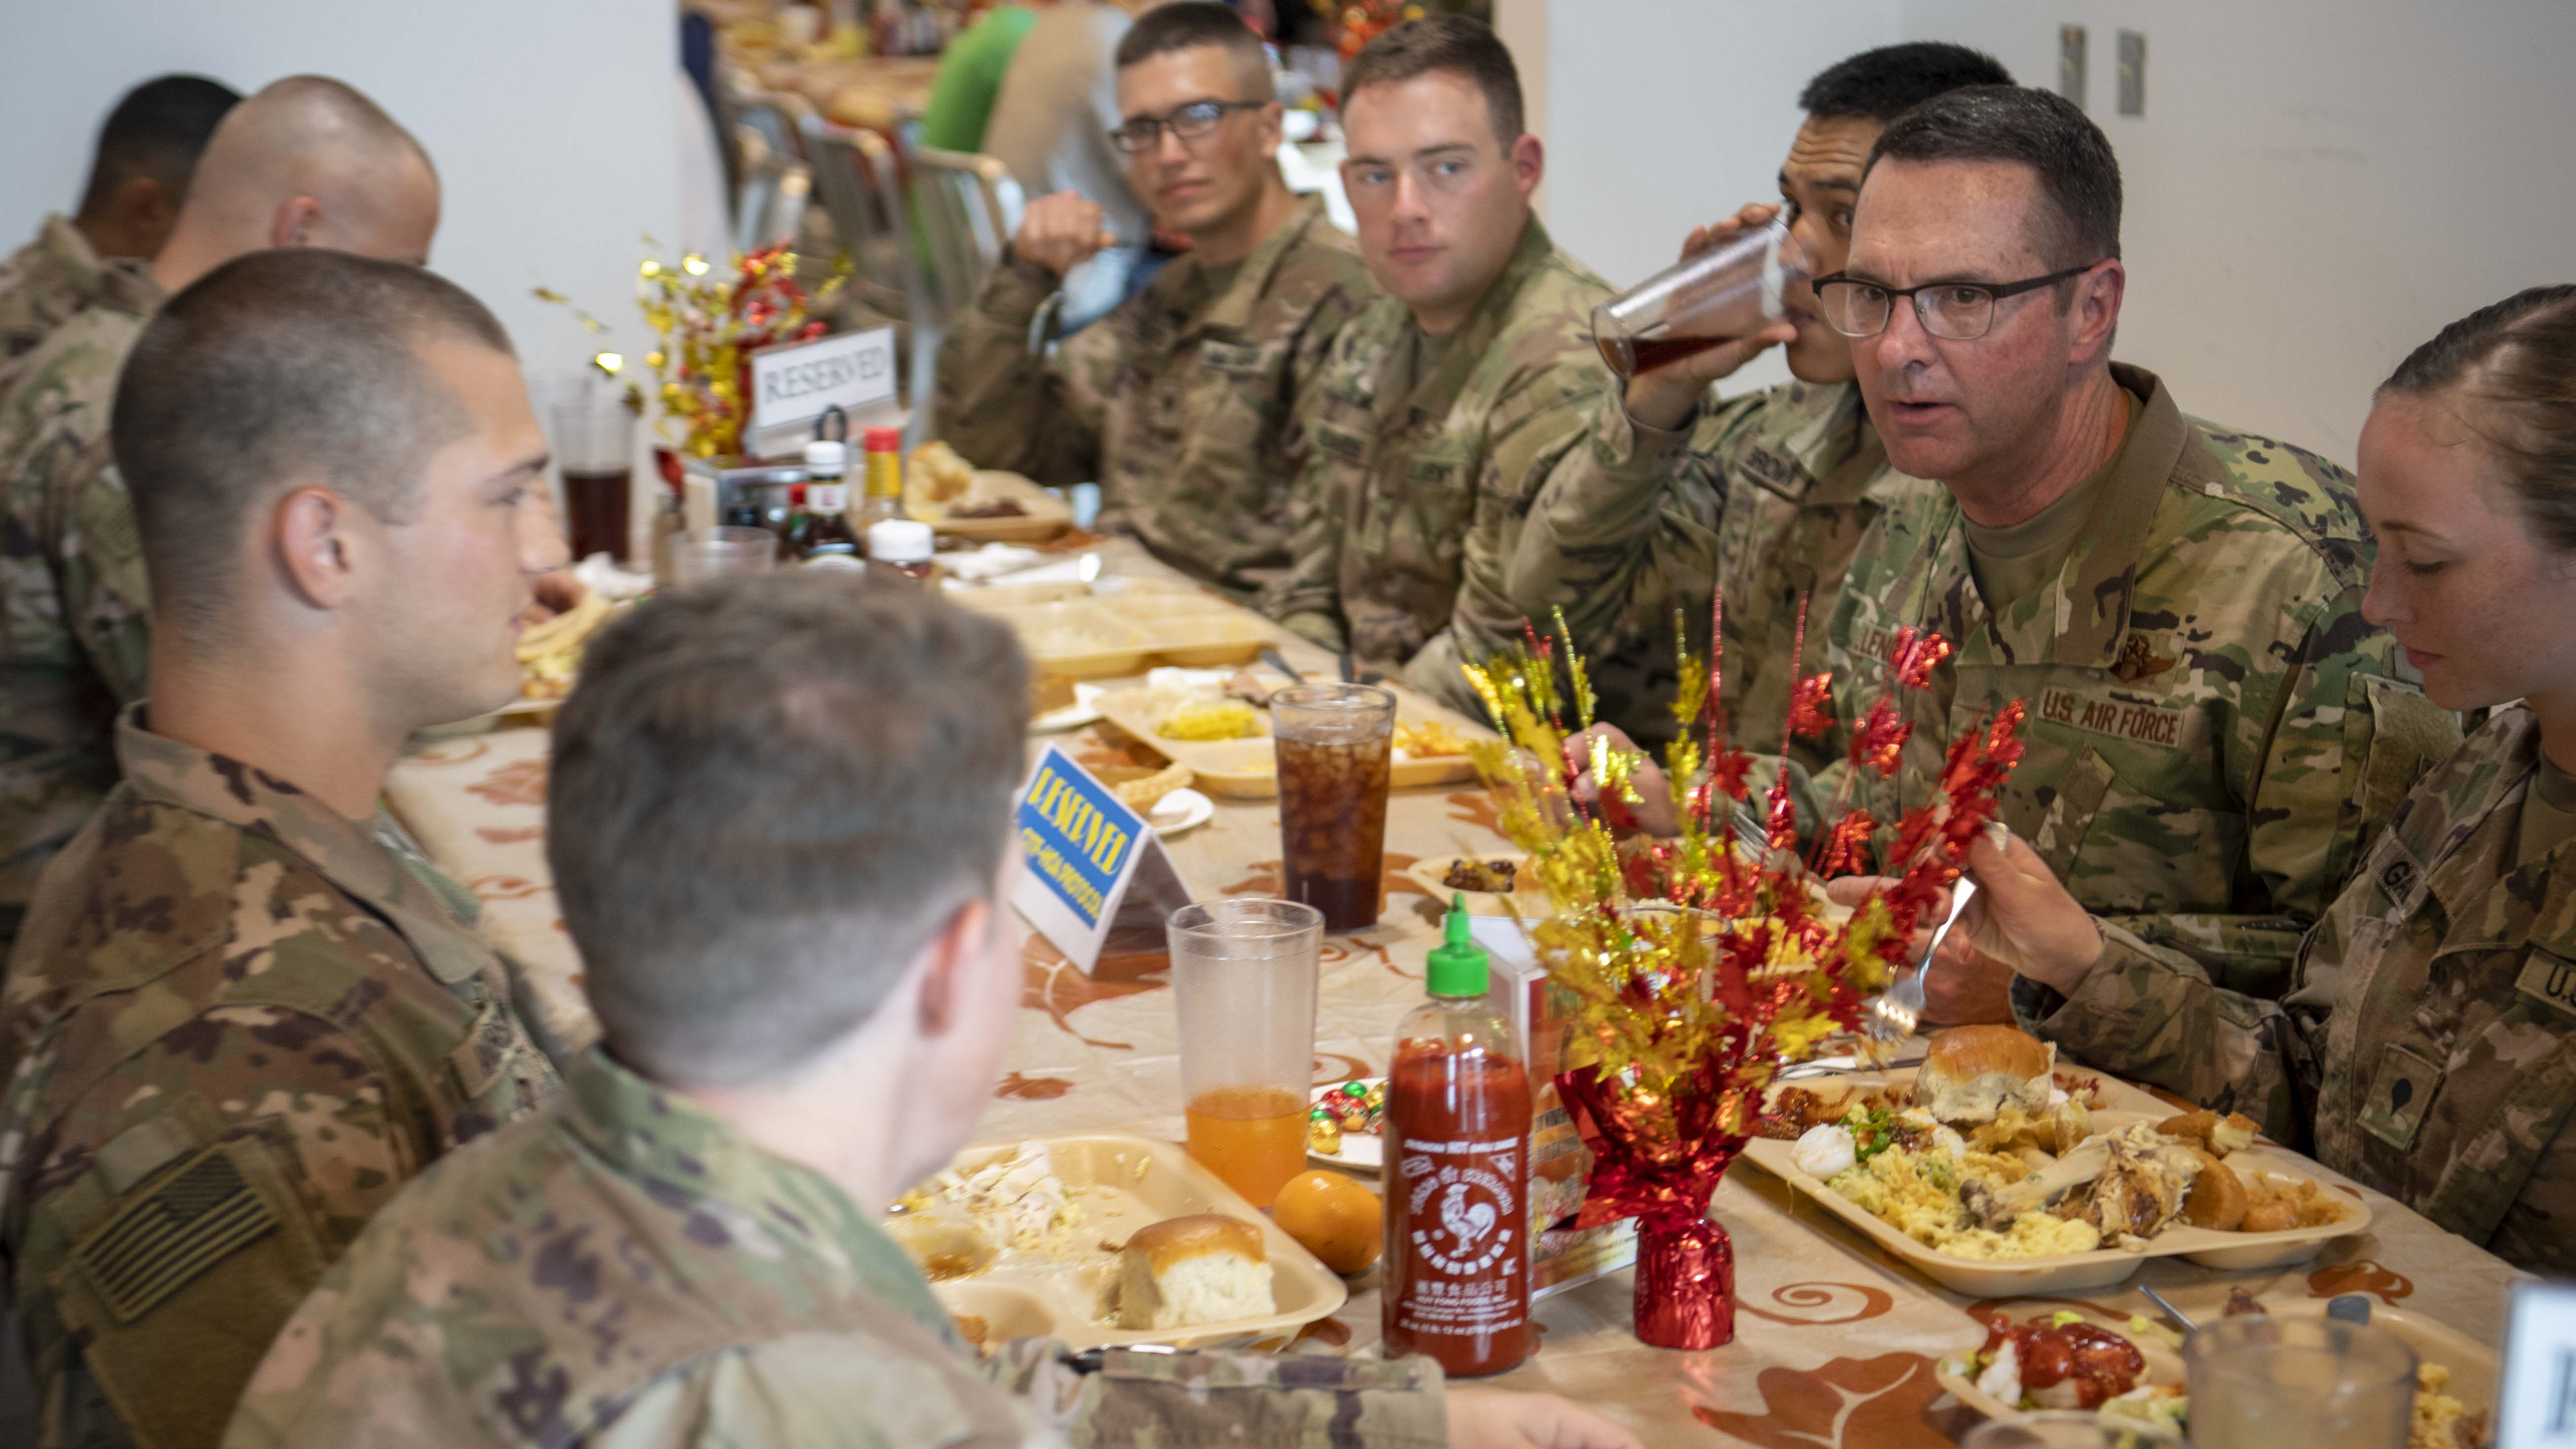 U.S. Air Force Gen. Joseph Lengyel, chief, National Guard Bureau, (right), eats Thanksgiving dinner with U.S. service members at Camp Lemonnier, Djibouti, Nov. 28, 2019. Lengyel visited Camp Lemonnier to meet with deployed National Guardsmen and other service members. (U.S. Air Force photo by Staff Sgt. J.D. Strong II)